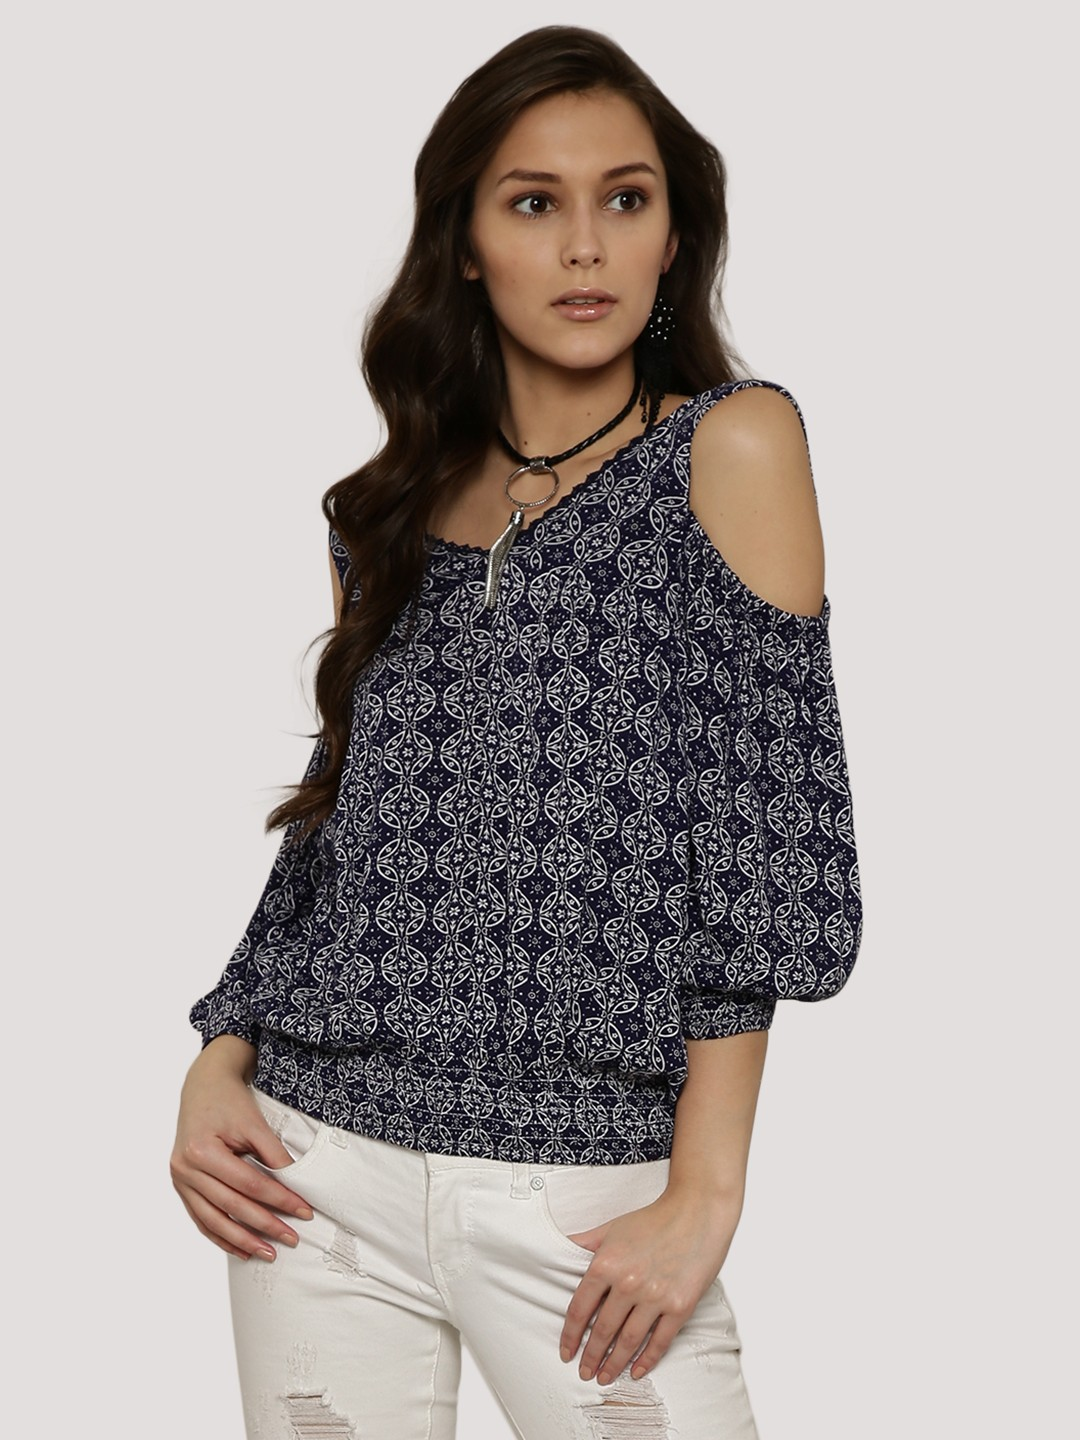 Buy Tops Online in india at Voonik. Tops have been every woman's best friend ever since shirts and pants entered the woman's wardrobe. When paired with pants they are super functional, comfortable and give you all the freedom you need to run errands, have an .